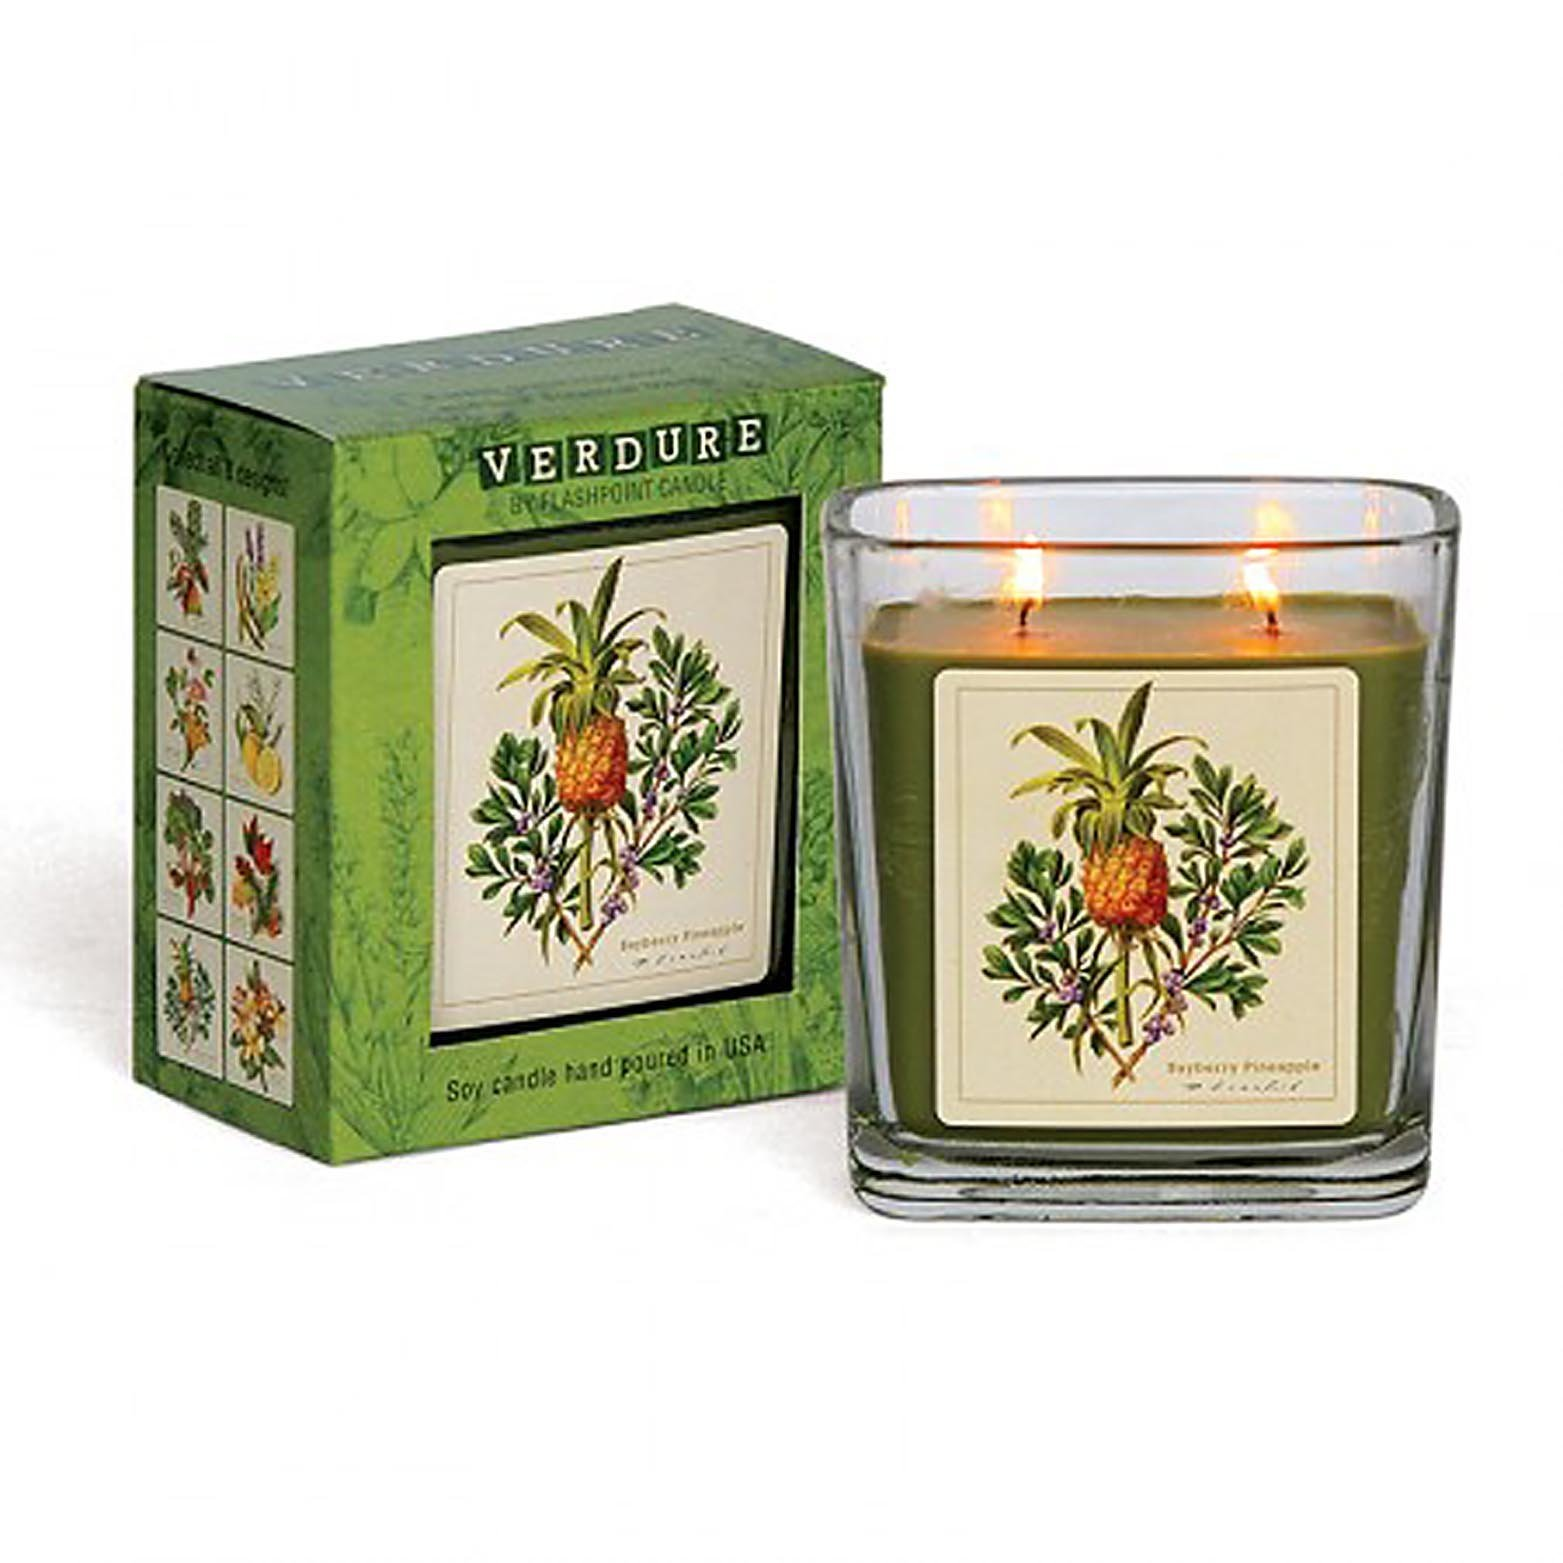 Verdure Soy Double Wick Candle Hand Poured in USA Boxed Gift (Bayberry Pineap...